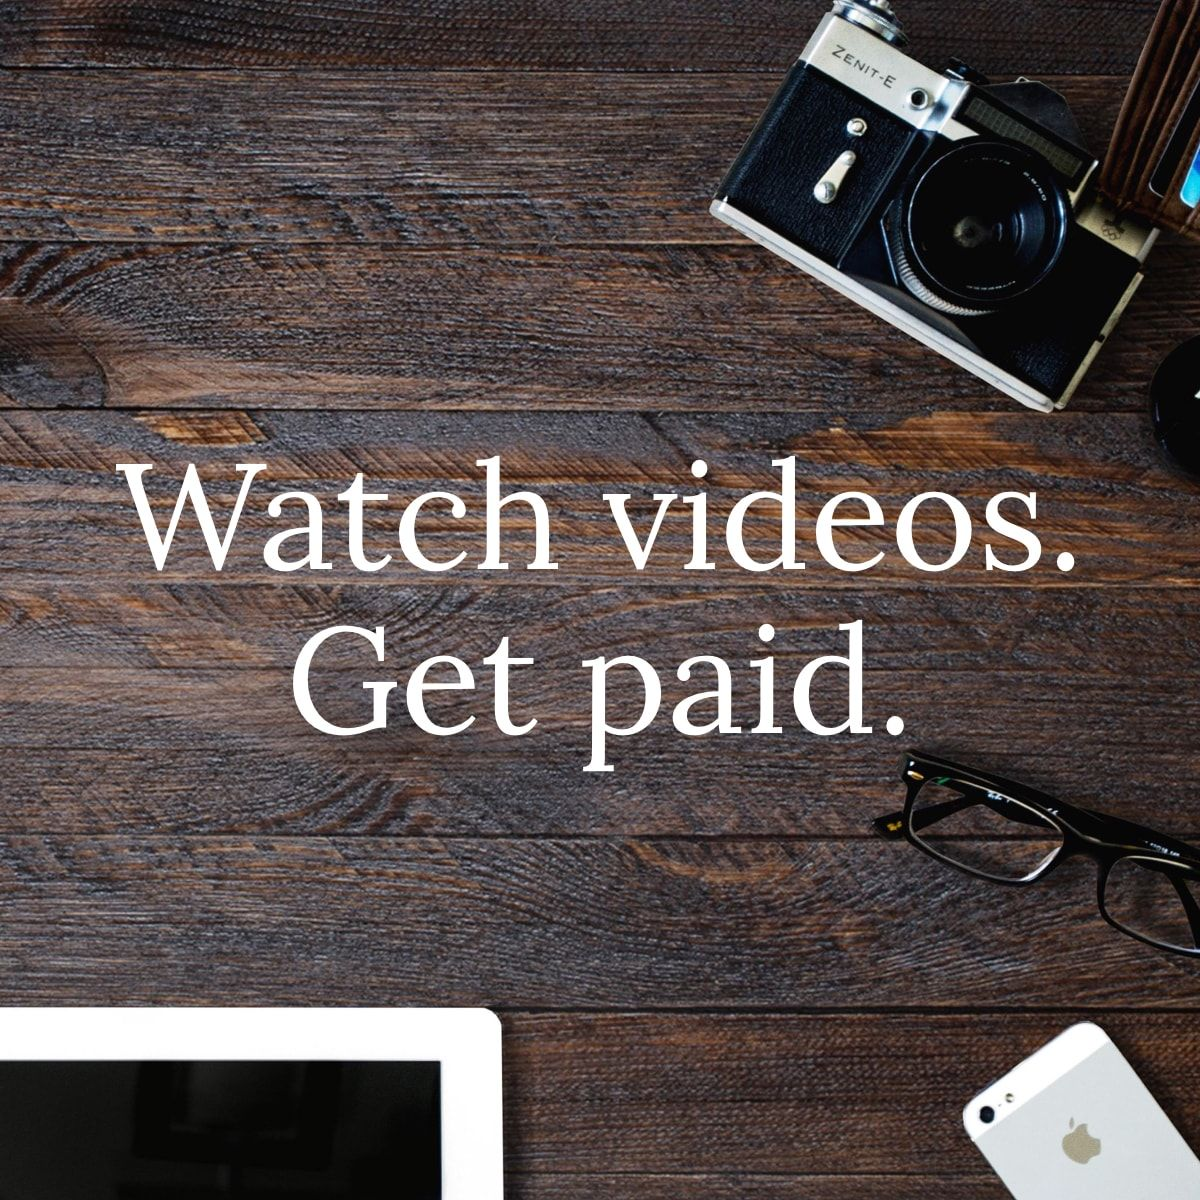 Get paid for watching ads. Your voice is a currency. Use it ...